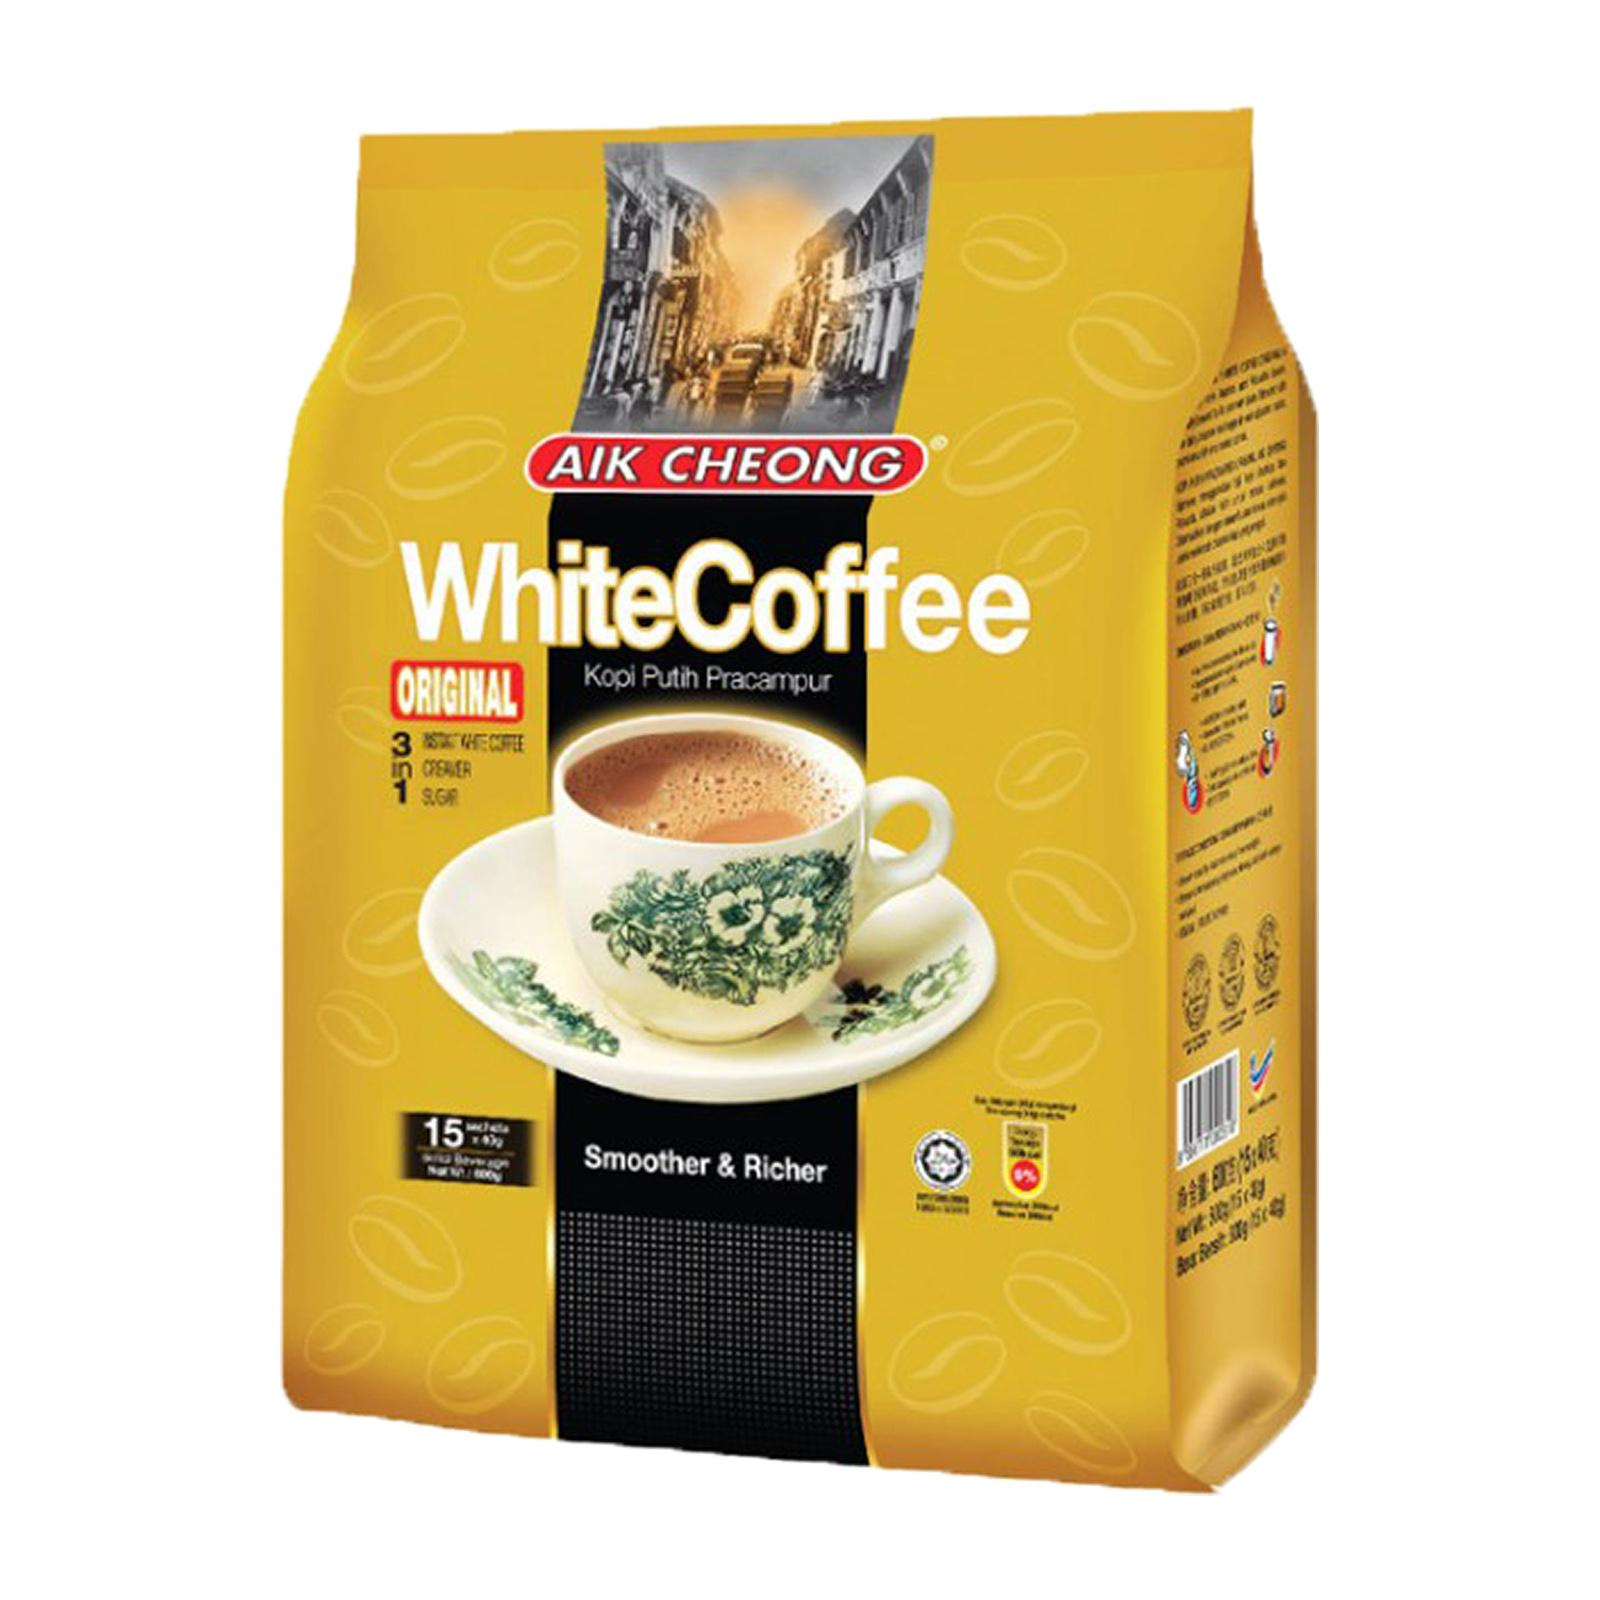 Aik Cheong 3 In 1 White Coffee OrigInal